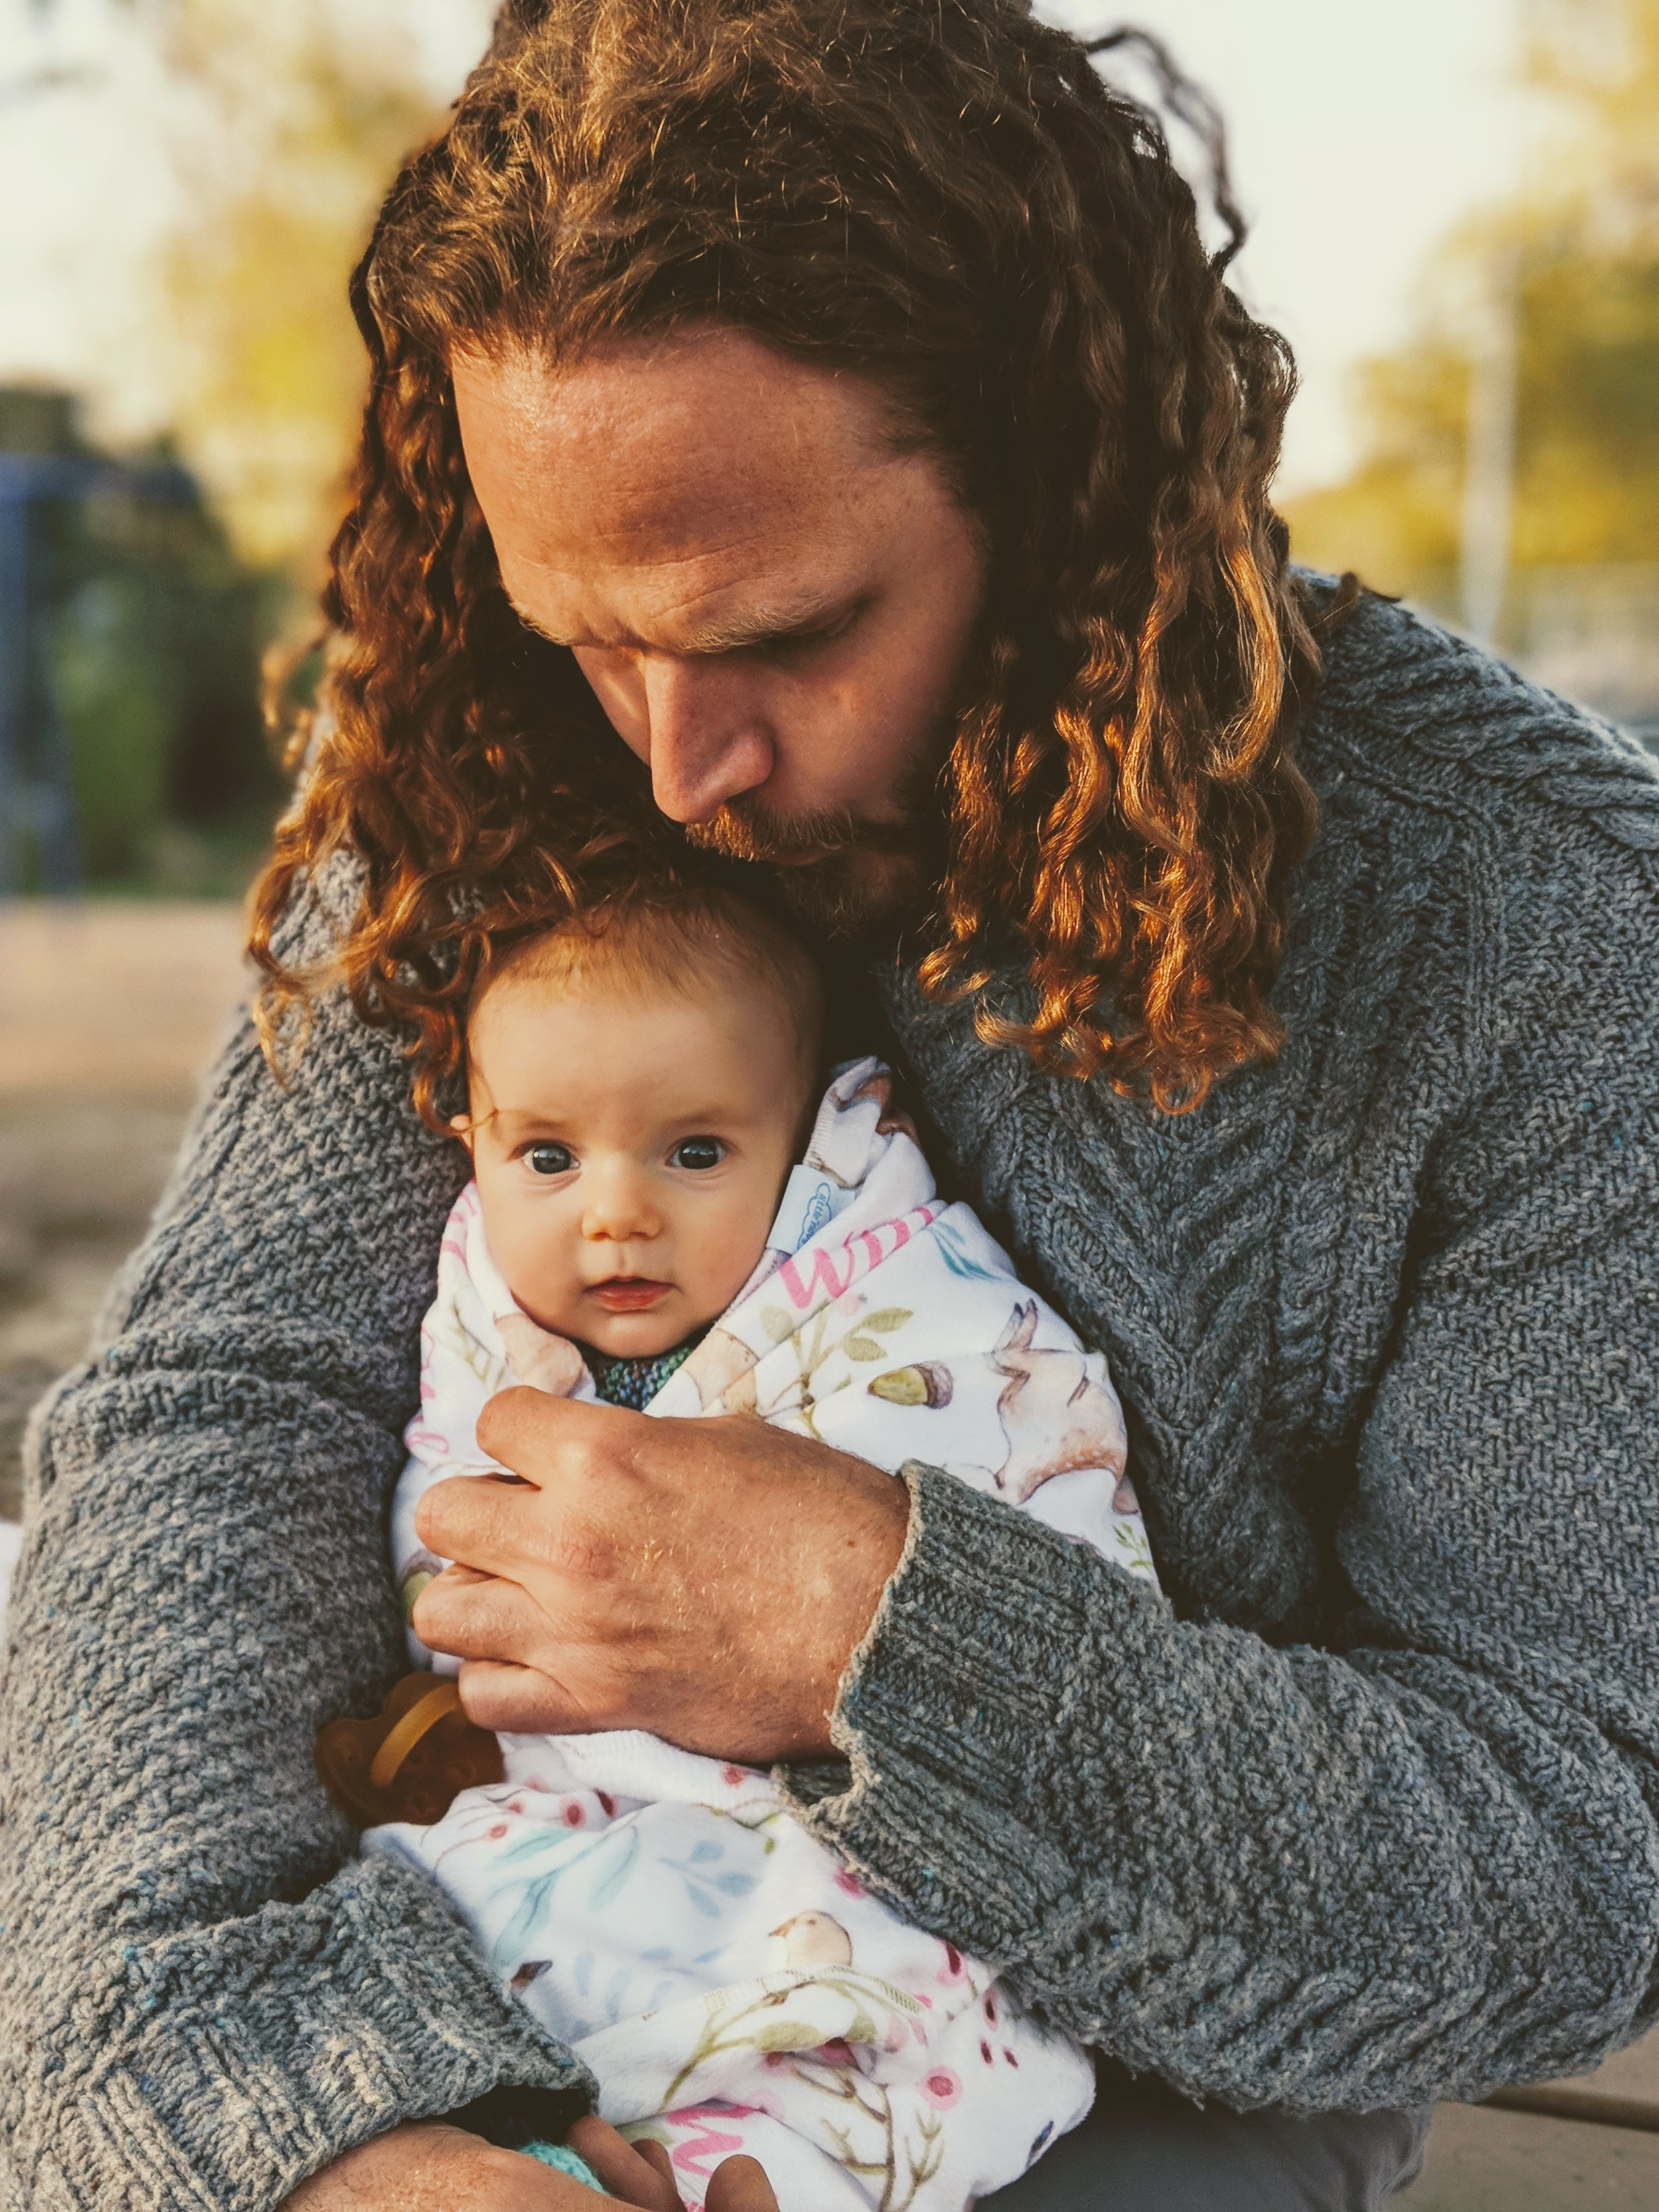 This photo makes my heart skip a beat every time I see it. Chris' luscious locks, his sweater, the golden hour lighting and of course that precious baby face. Chris is such a great dad. This ones a framer.